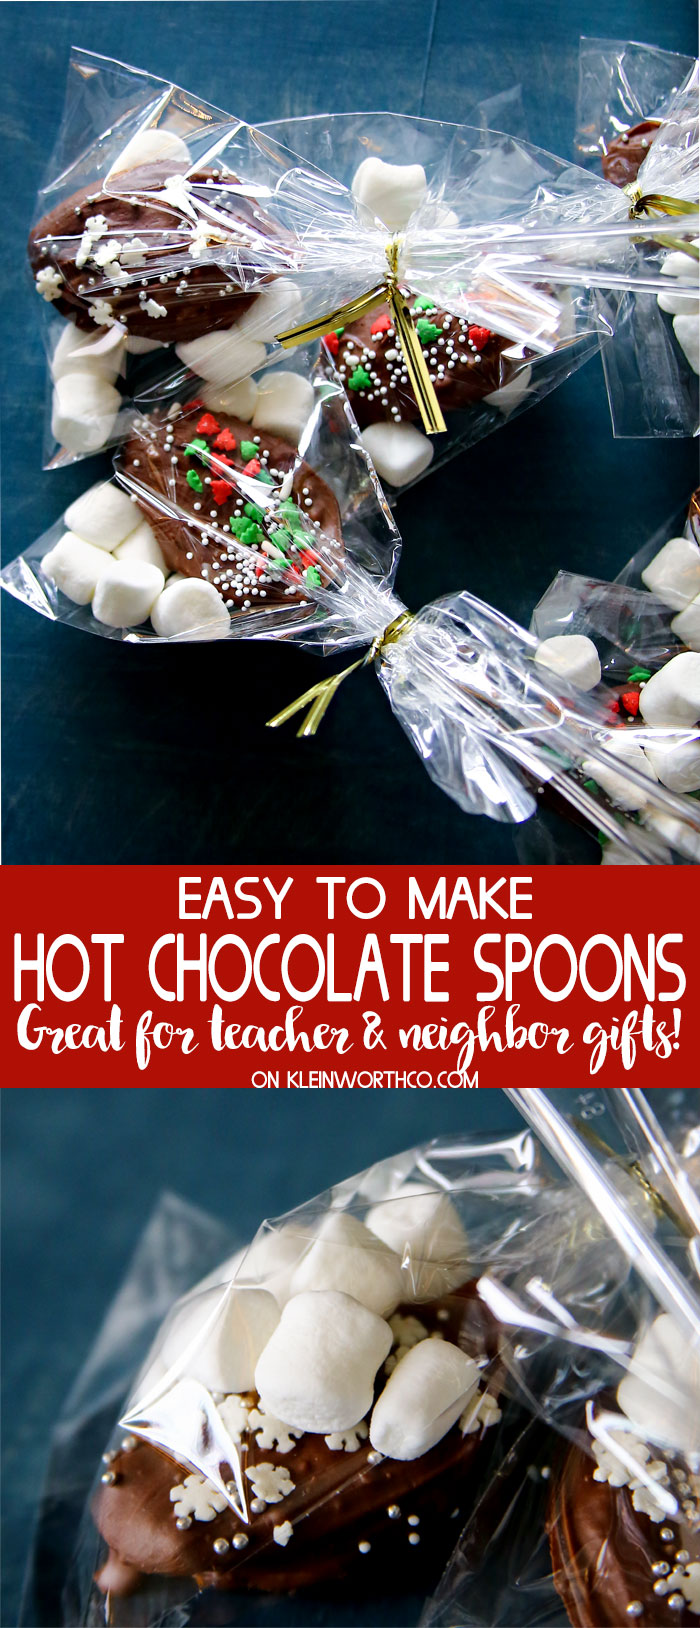 Fun Christmas Gifts - Easy Hot Chocolate Spoons